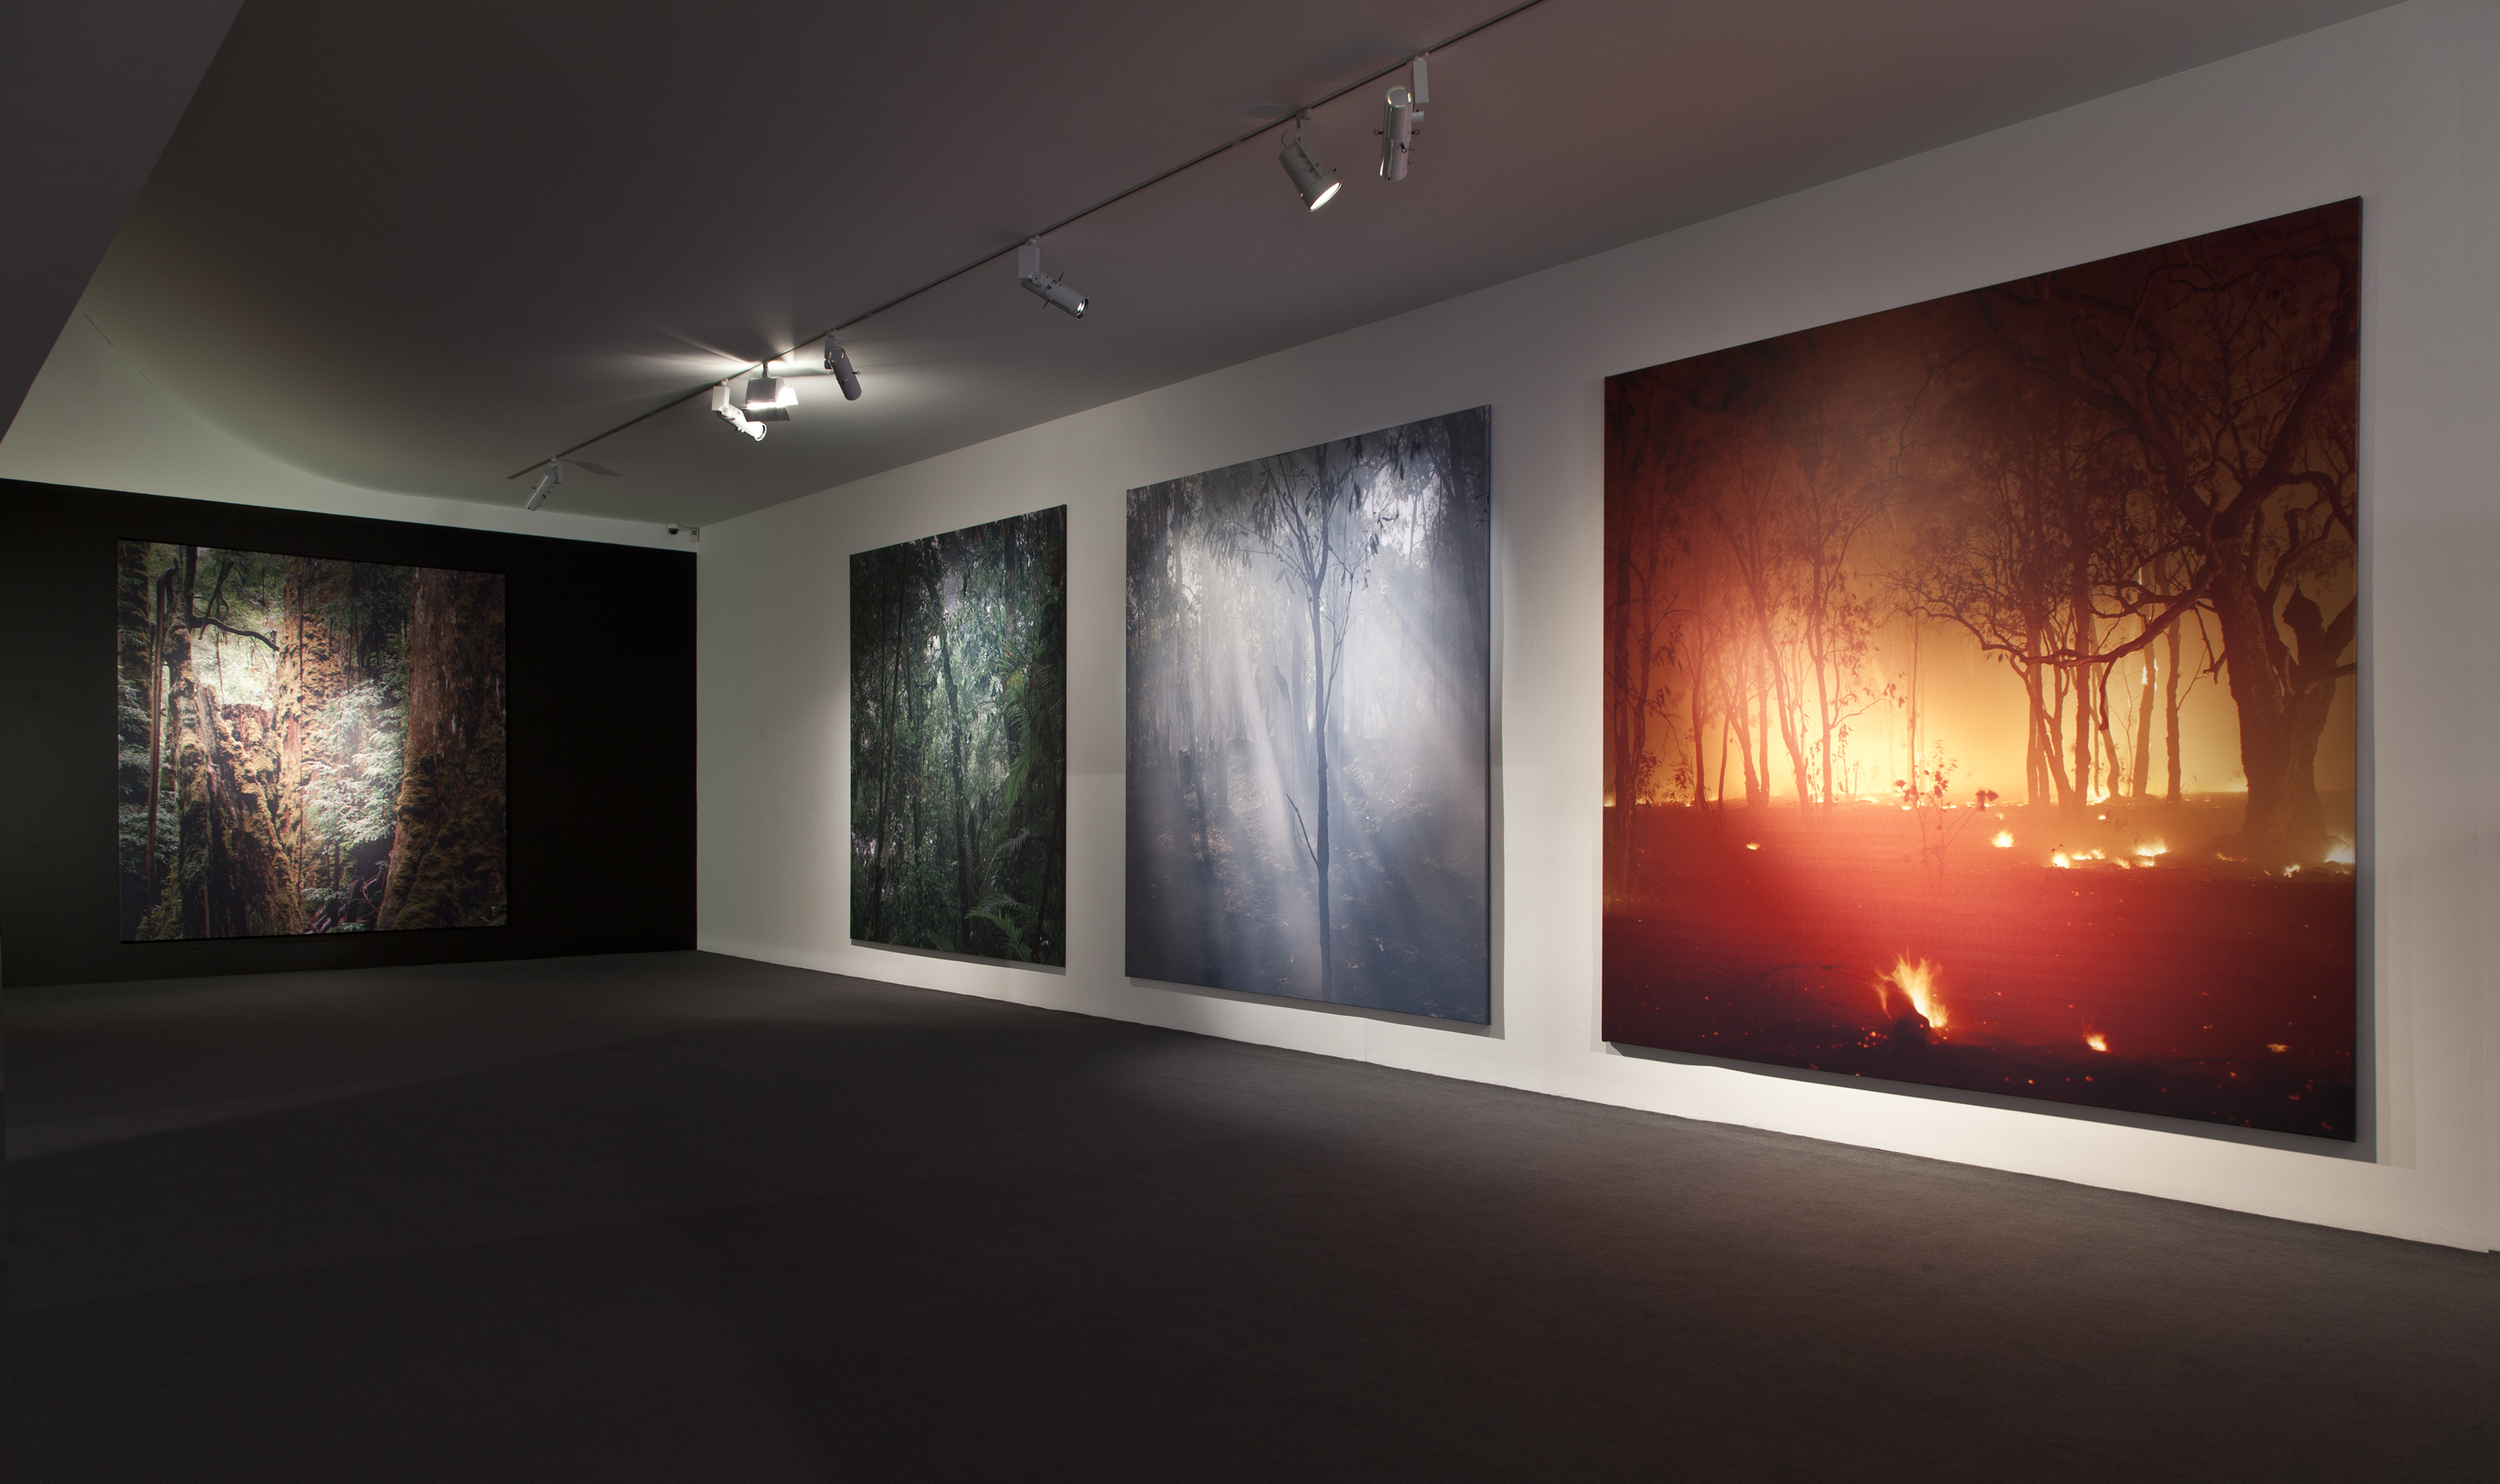 In the shadow of change ; Monash Gallery of Art, 2014, photographs each 3 x 3m